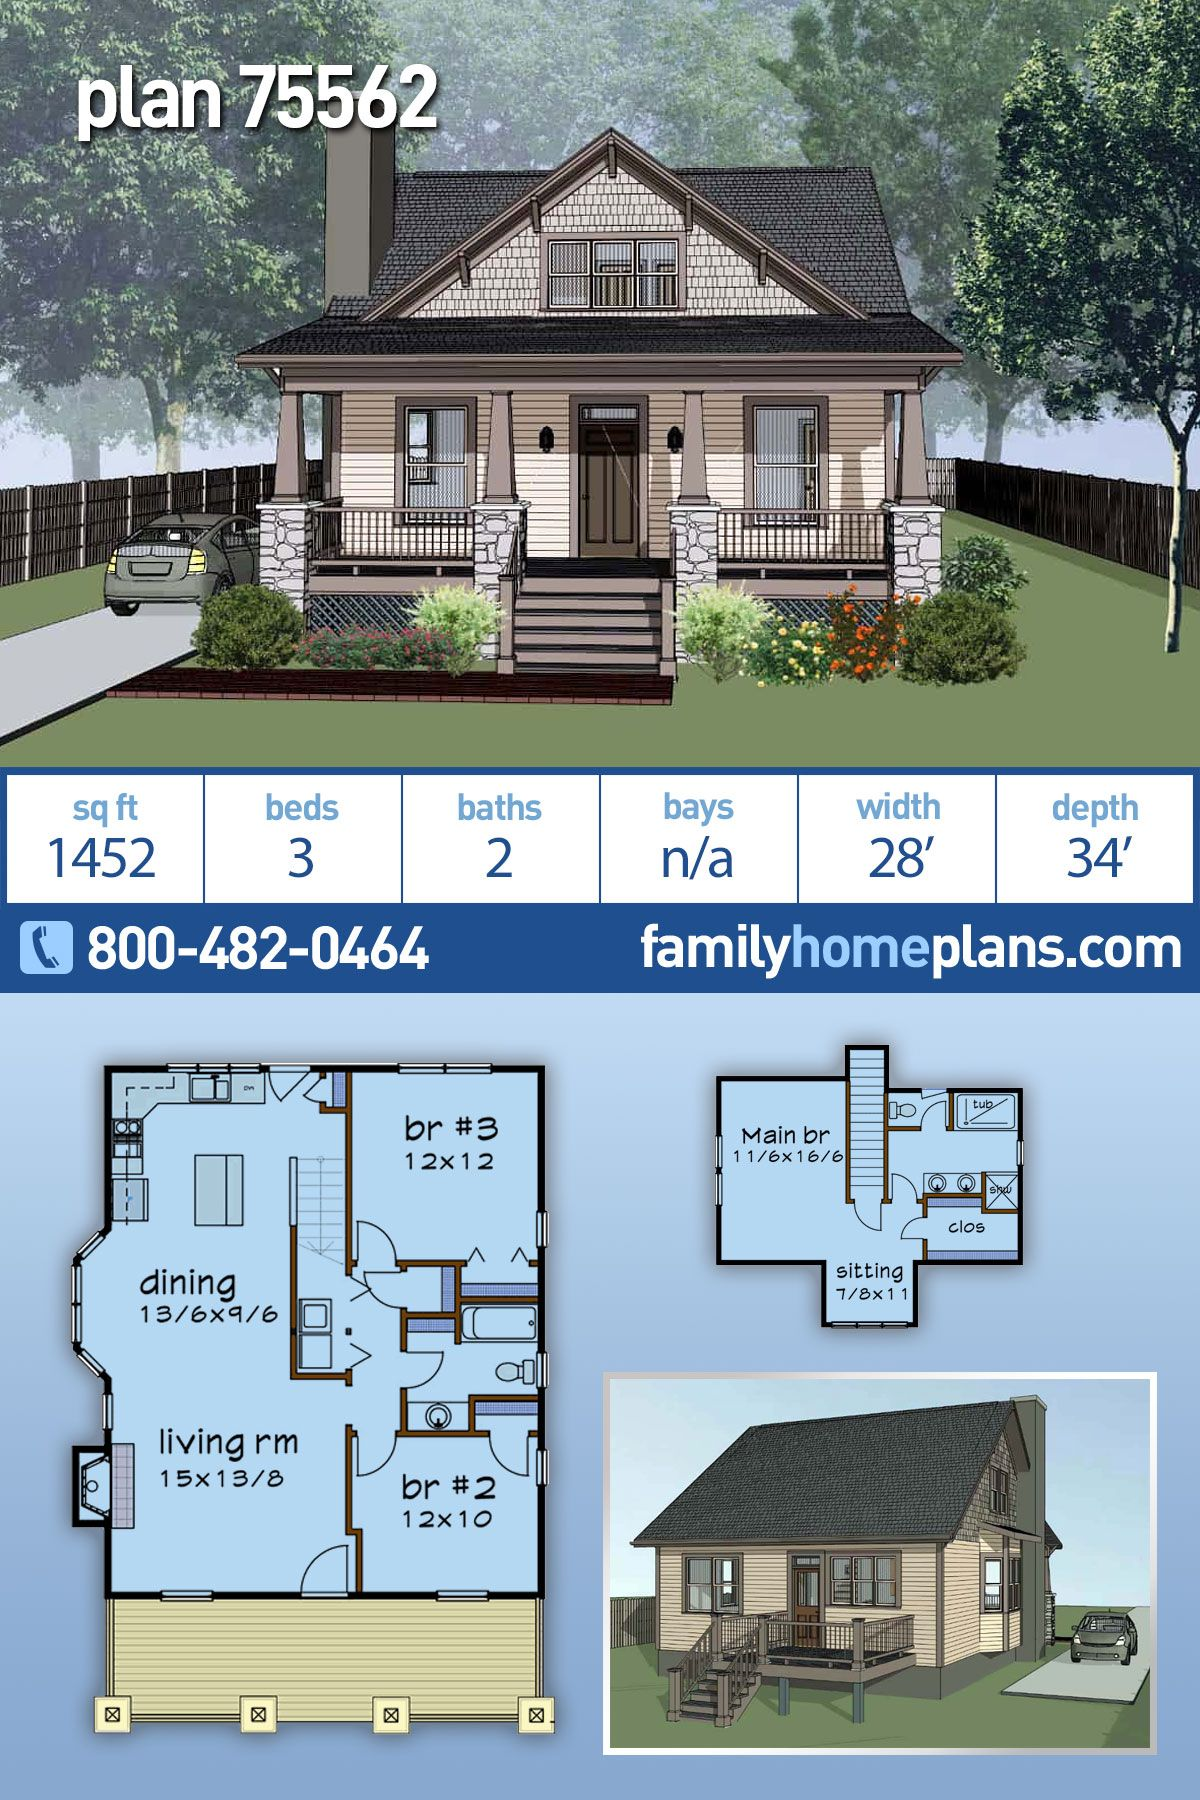 Craftsman Style House Plan 75562 With 3 Bed 2 Bath In 2020 Craftsman Style House Plans Craftsman House Plans Cottage House Plans